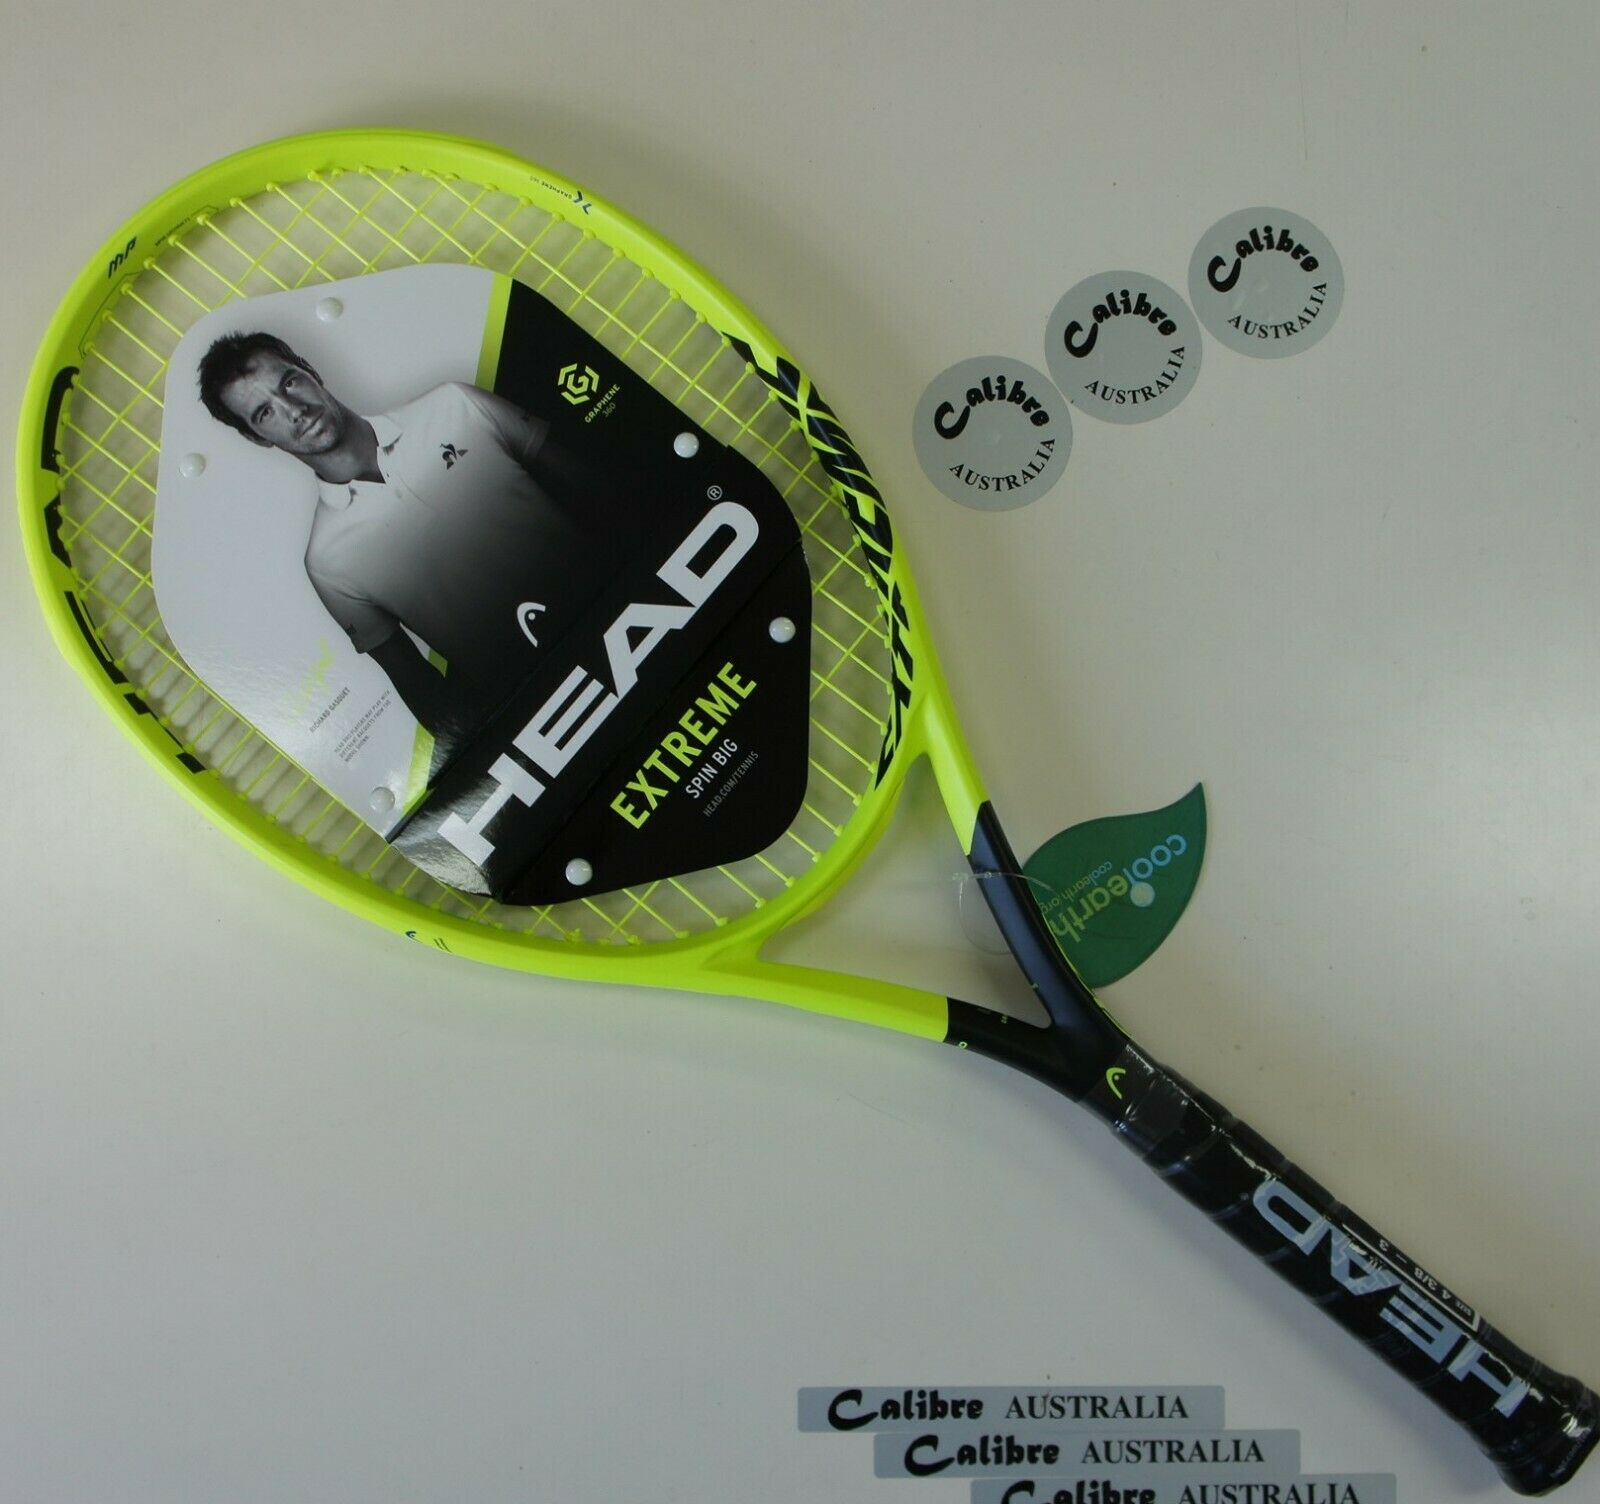 HEAD Graphene 360 EXTREME MP Tennis Racquet, STRUNG, Grip 2 (4-1 4 ), 300 g